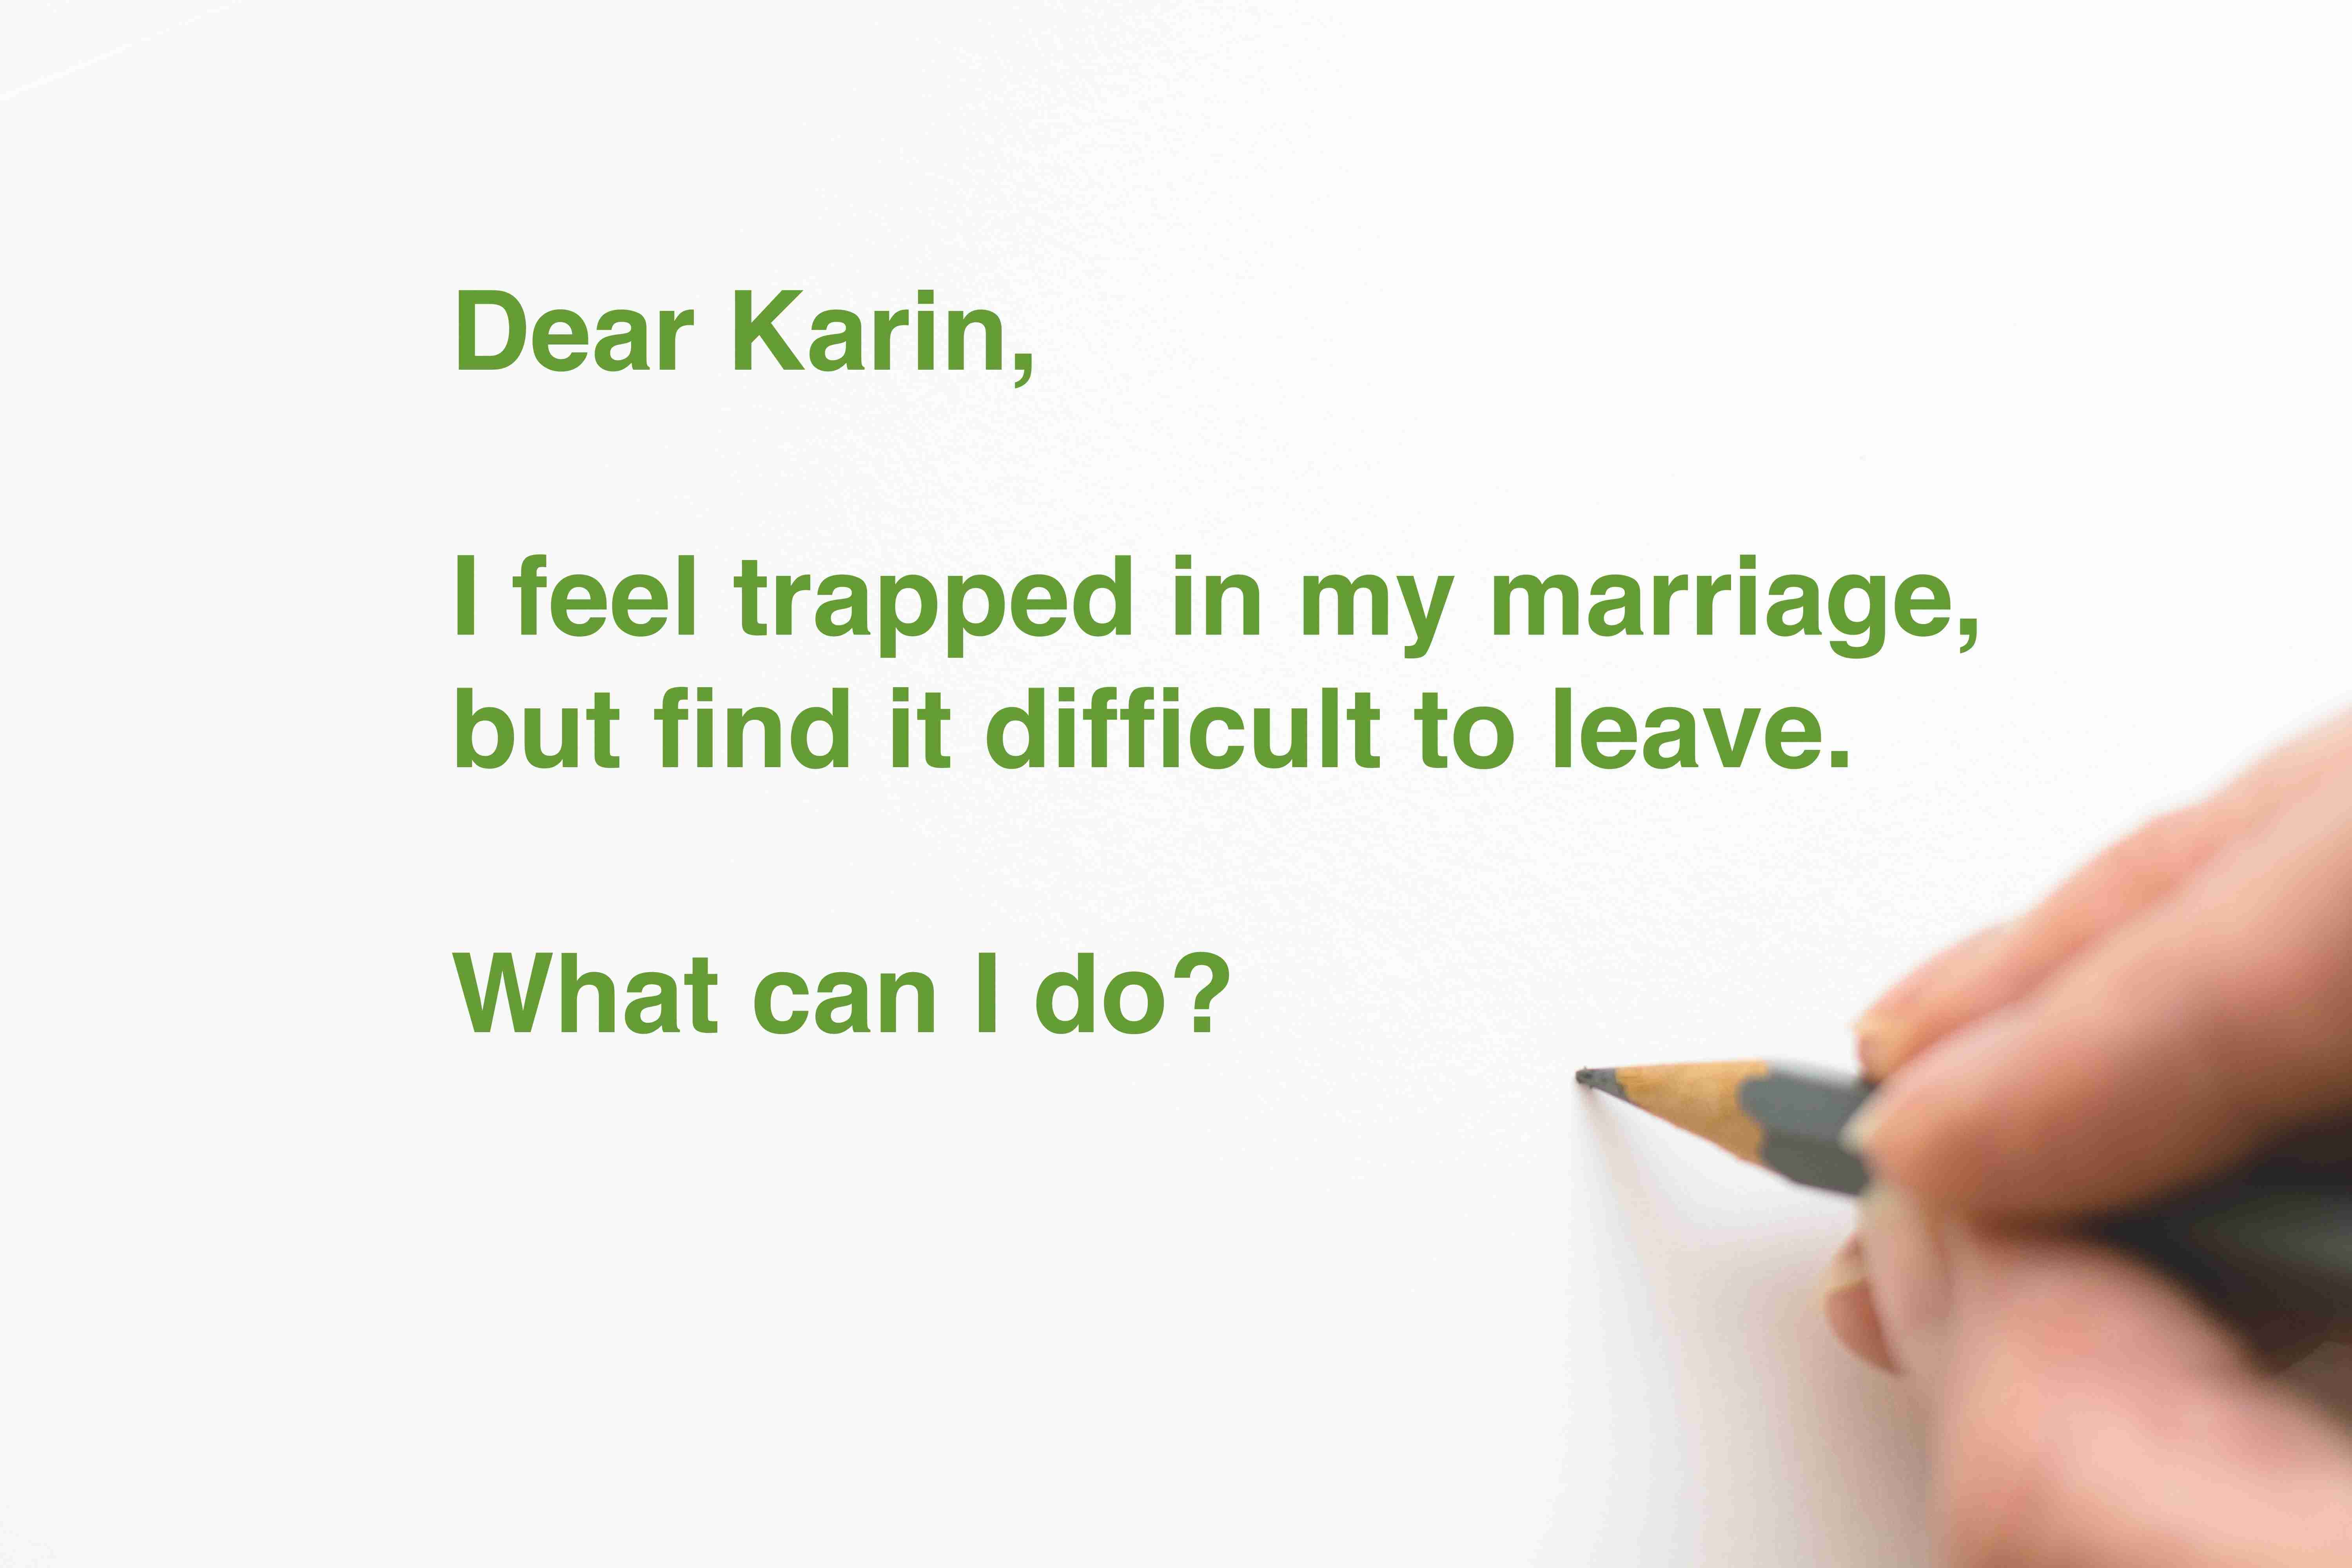 Dear Karin – Coping with a difficult marriage (c) KarinSieger.com